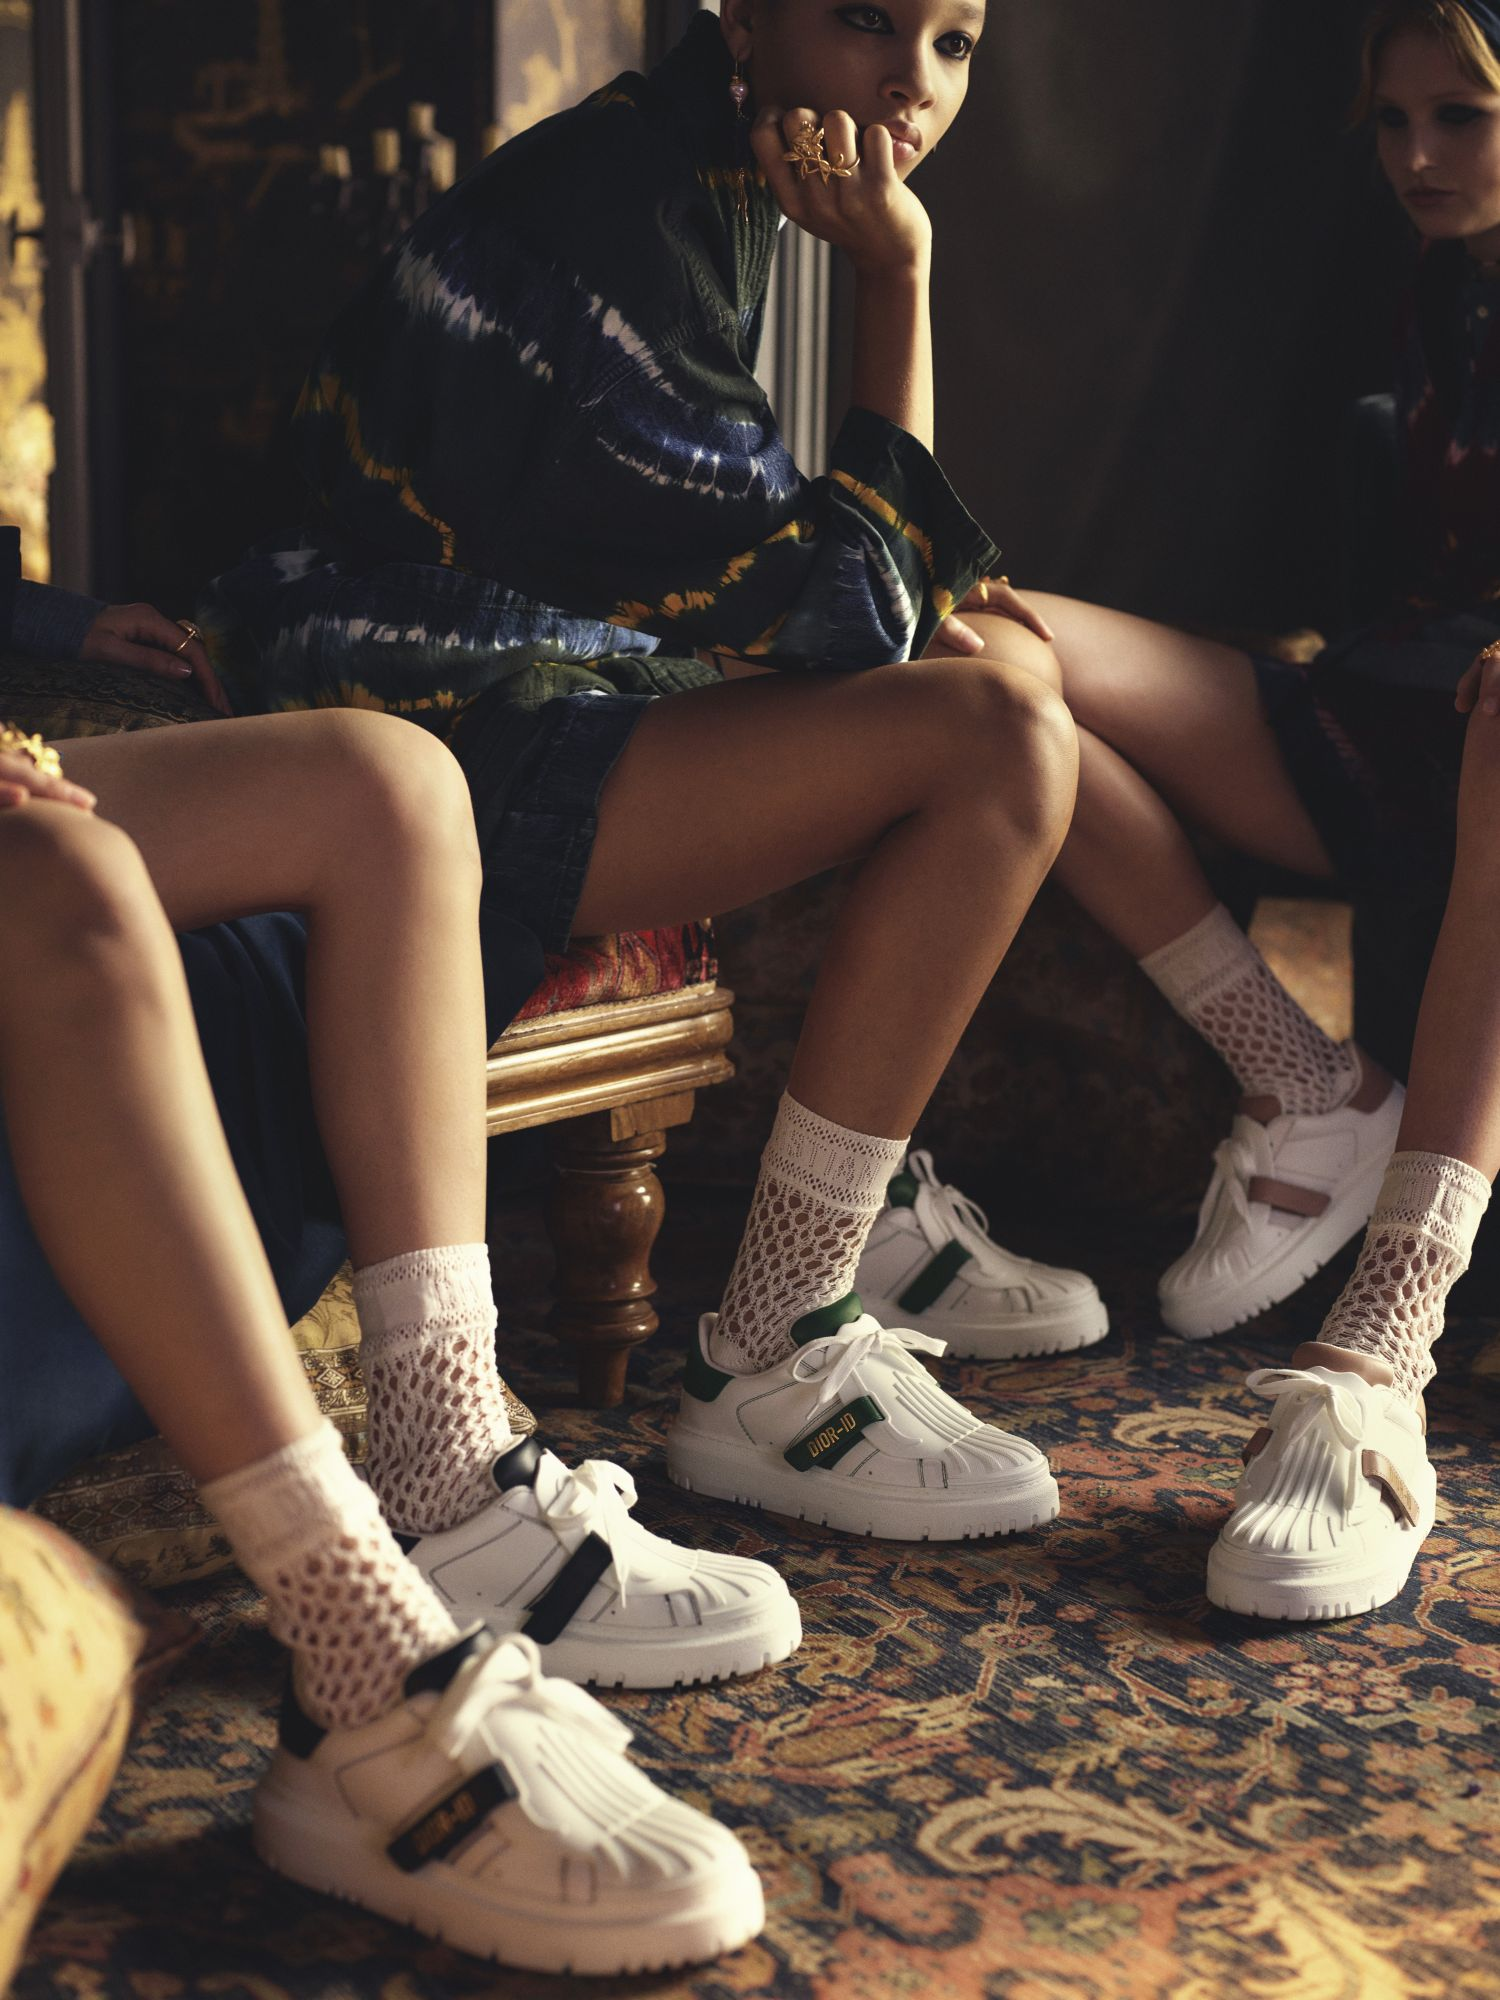 Dior, Nike, Alexander McQueen: 5 Fashionable White Sneakers To Have This 2021